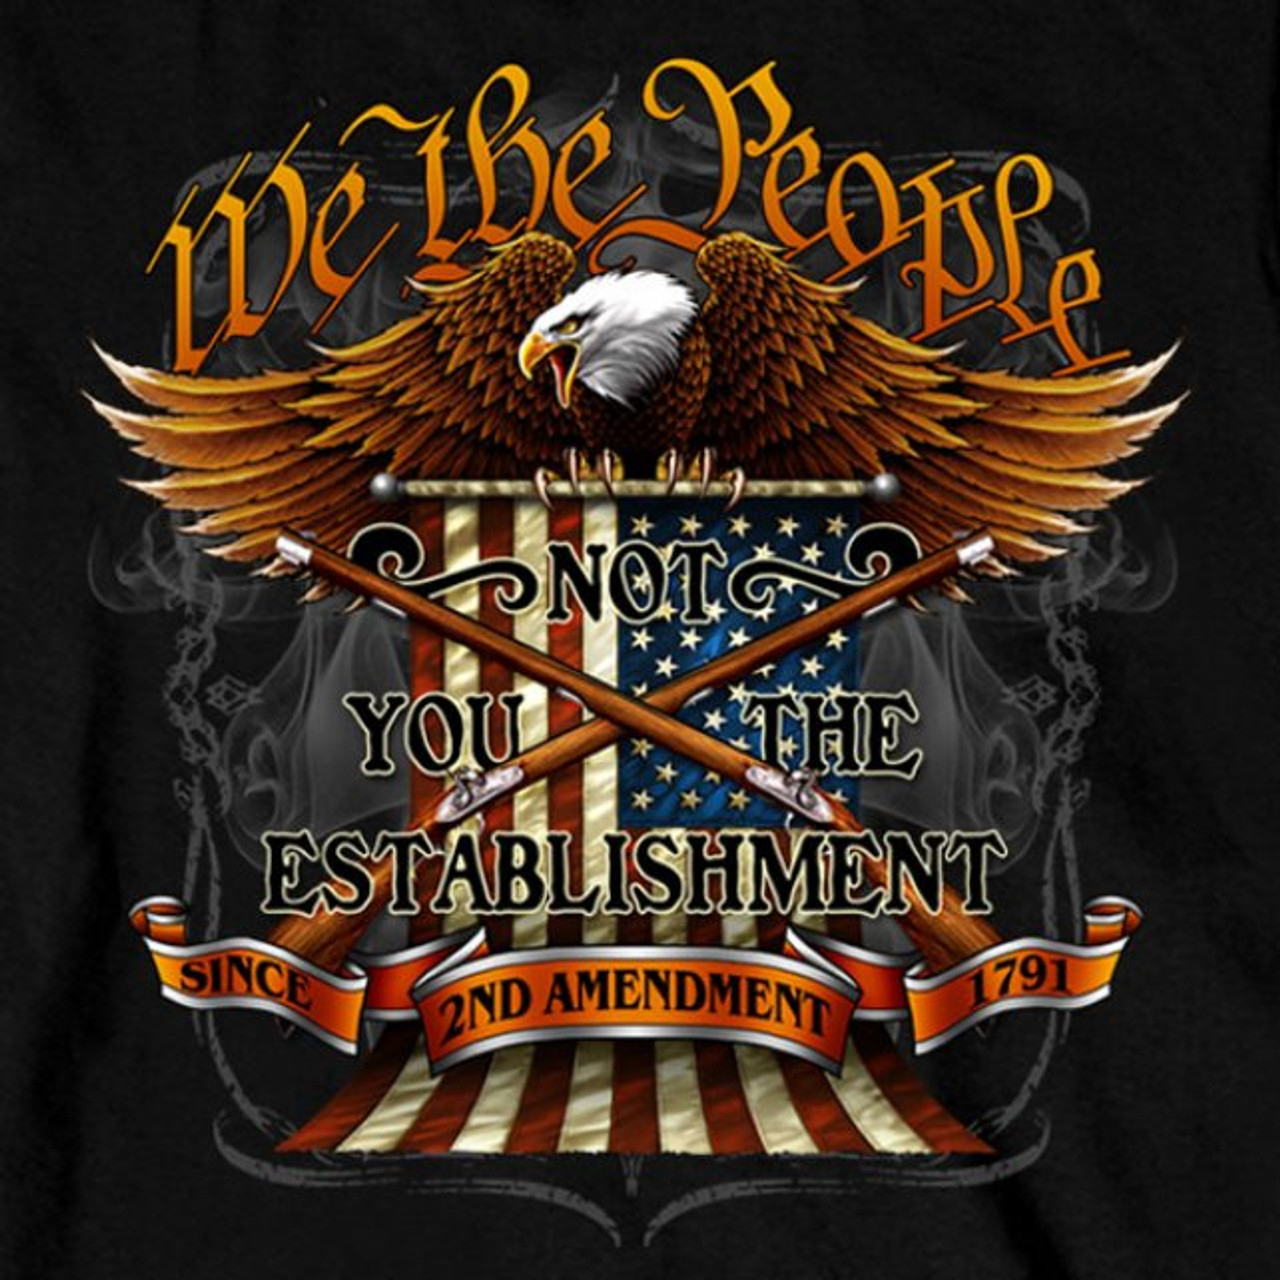 **(OFFICIALLY-LICENSED-NEW/WE-THE-PEOPLE,NOT-YOU-THE-ESTABLISHMENT/SINCE-1791/NICE-GRAPHIC-PRINTED-PREMIUM-DOUBLE-SIDED-LONG-SLEEVE-TEES)**